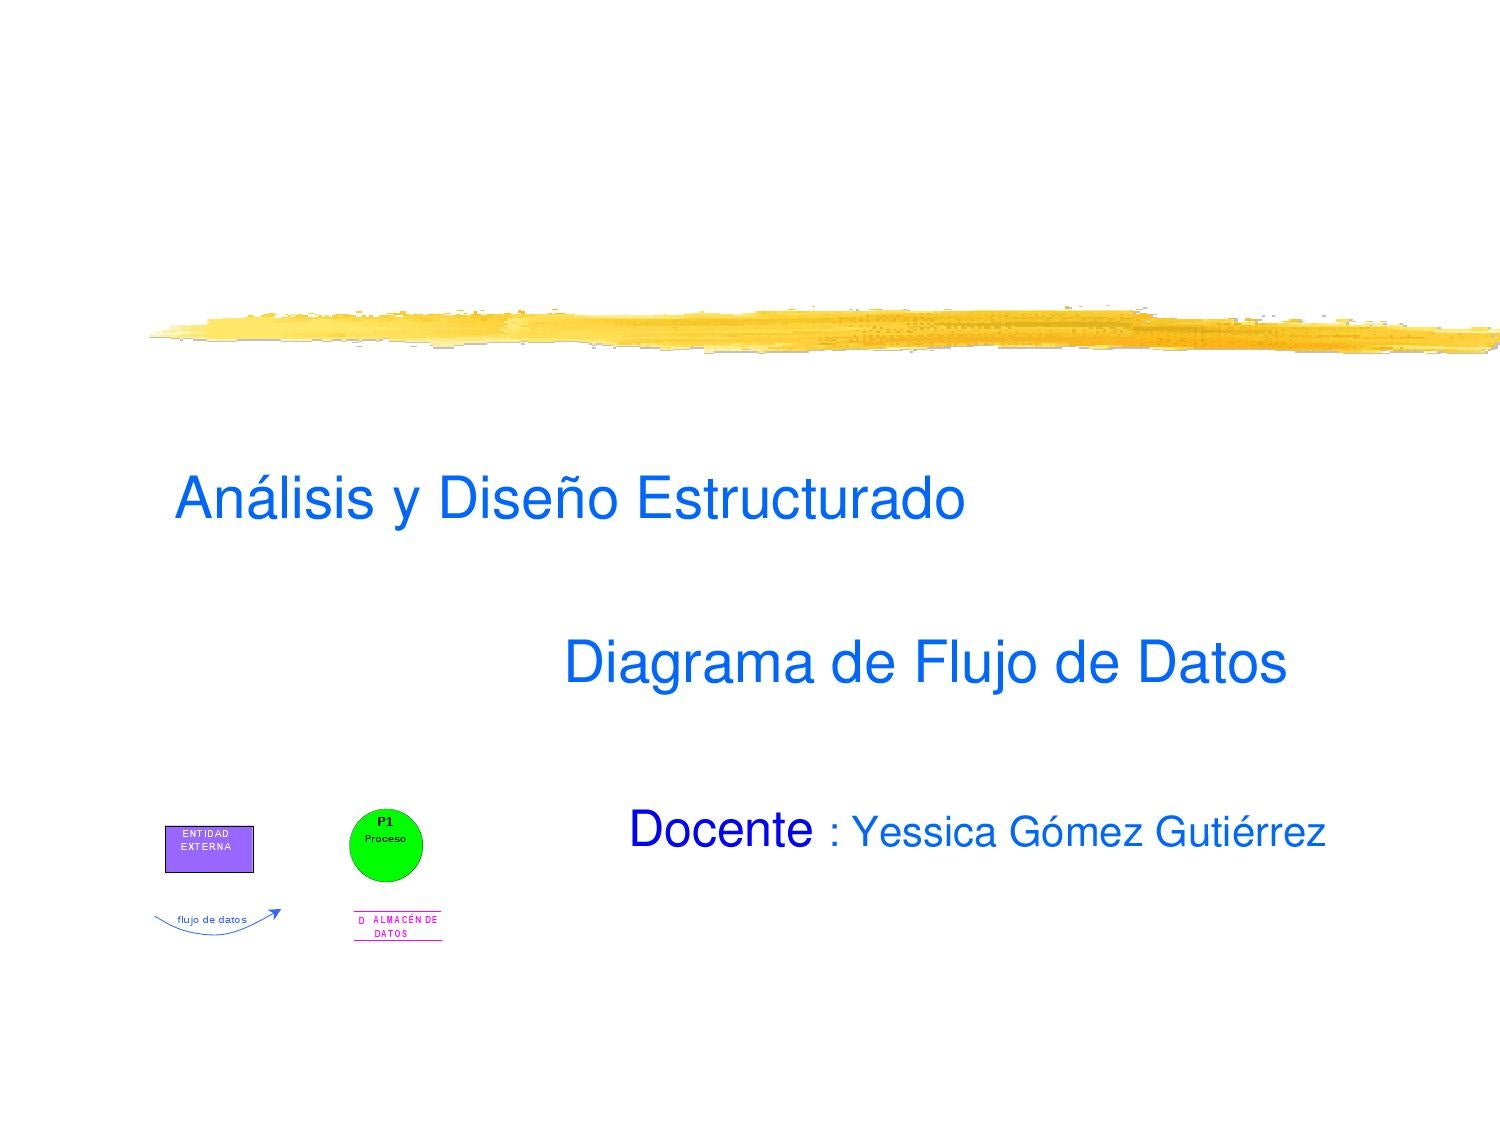 Diagrama de flujo de datos by hcam eduacionaci issuu ccuart Image collections